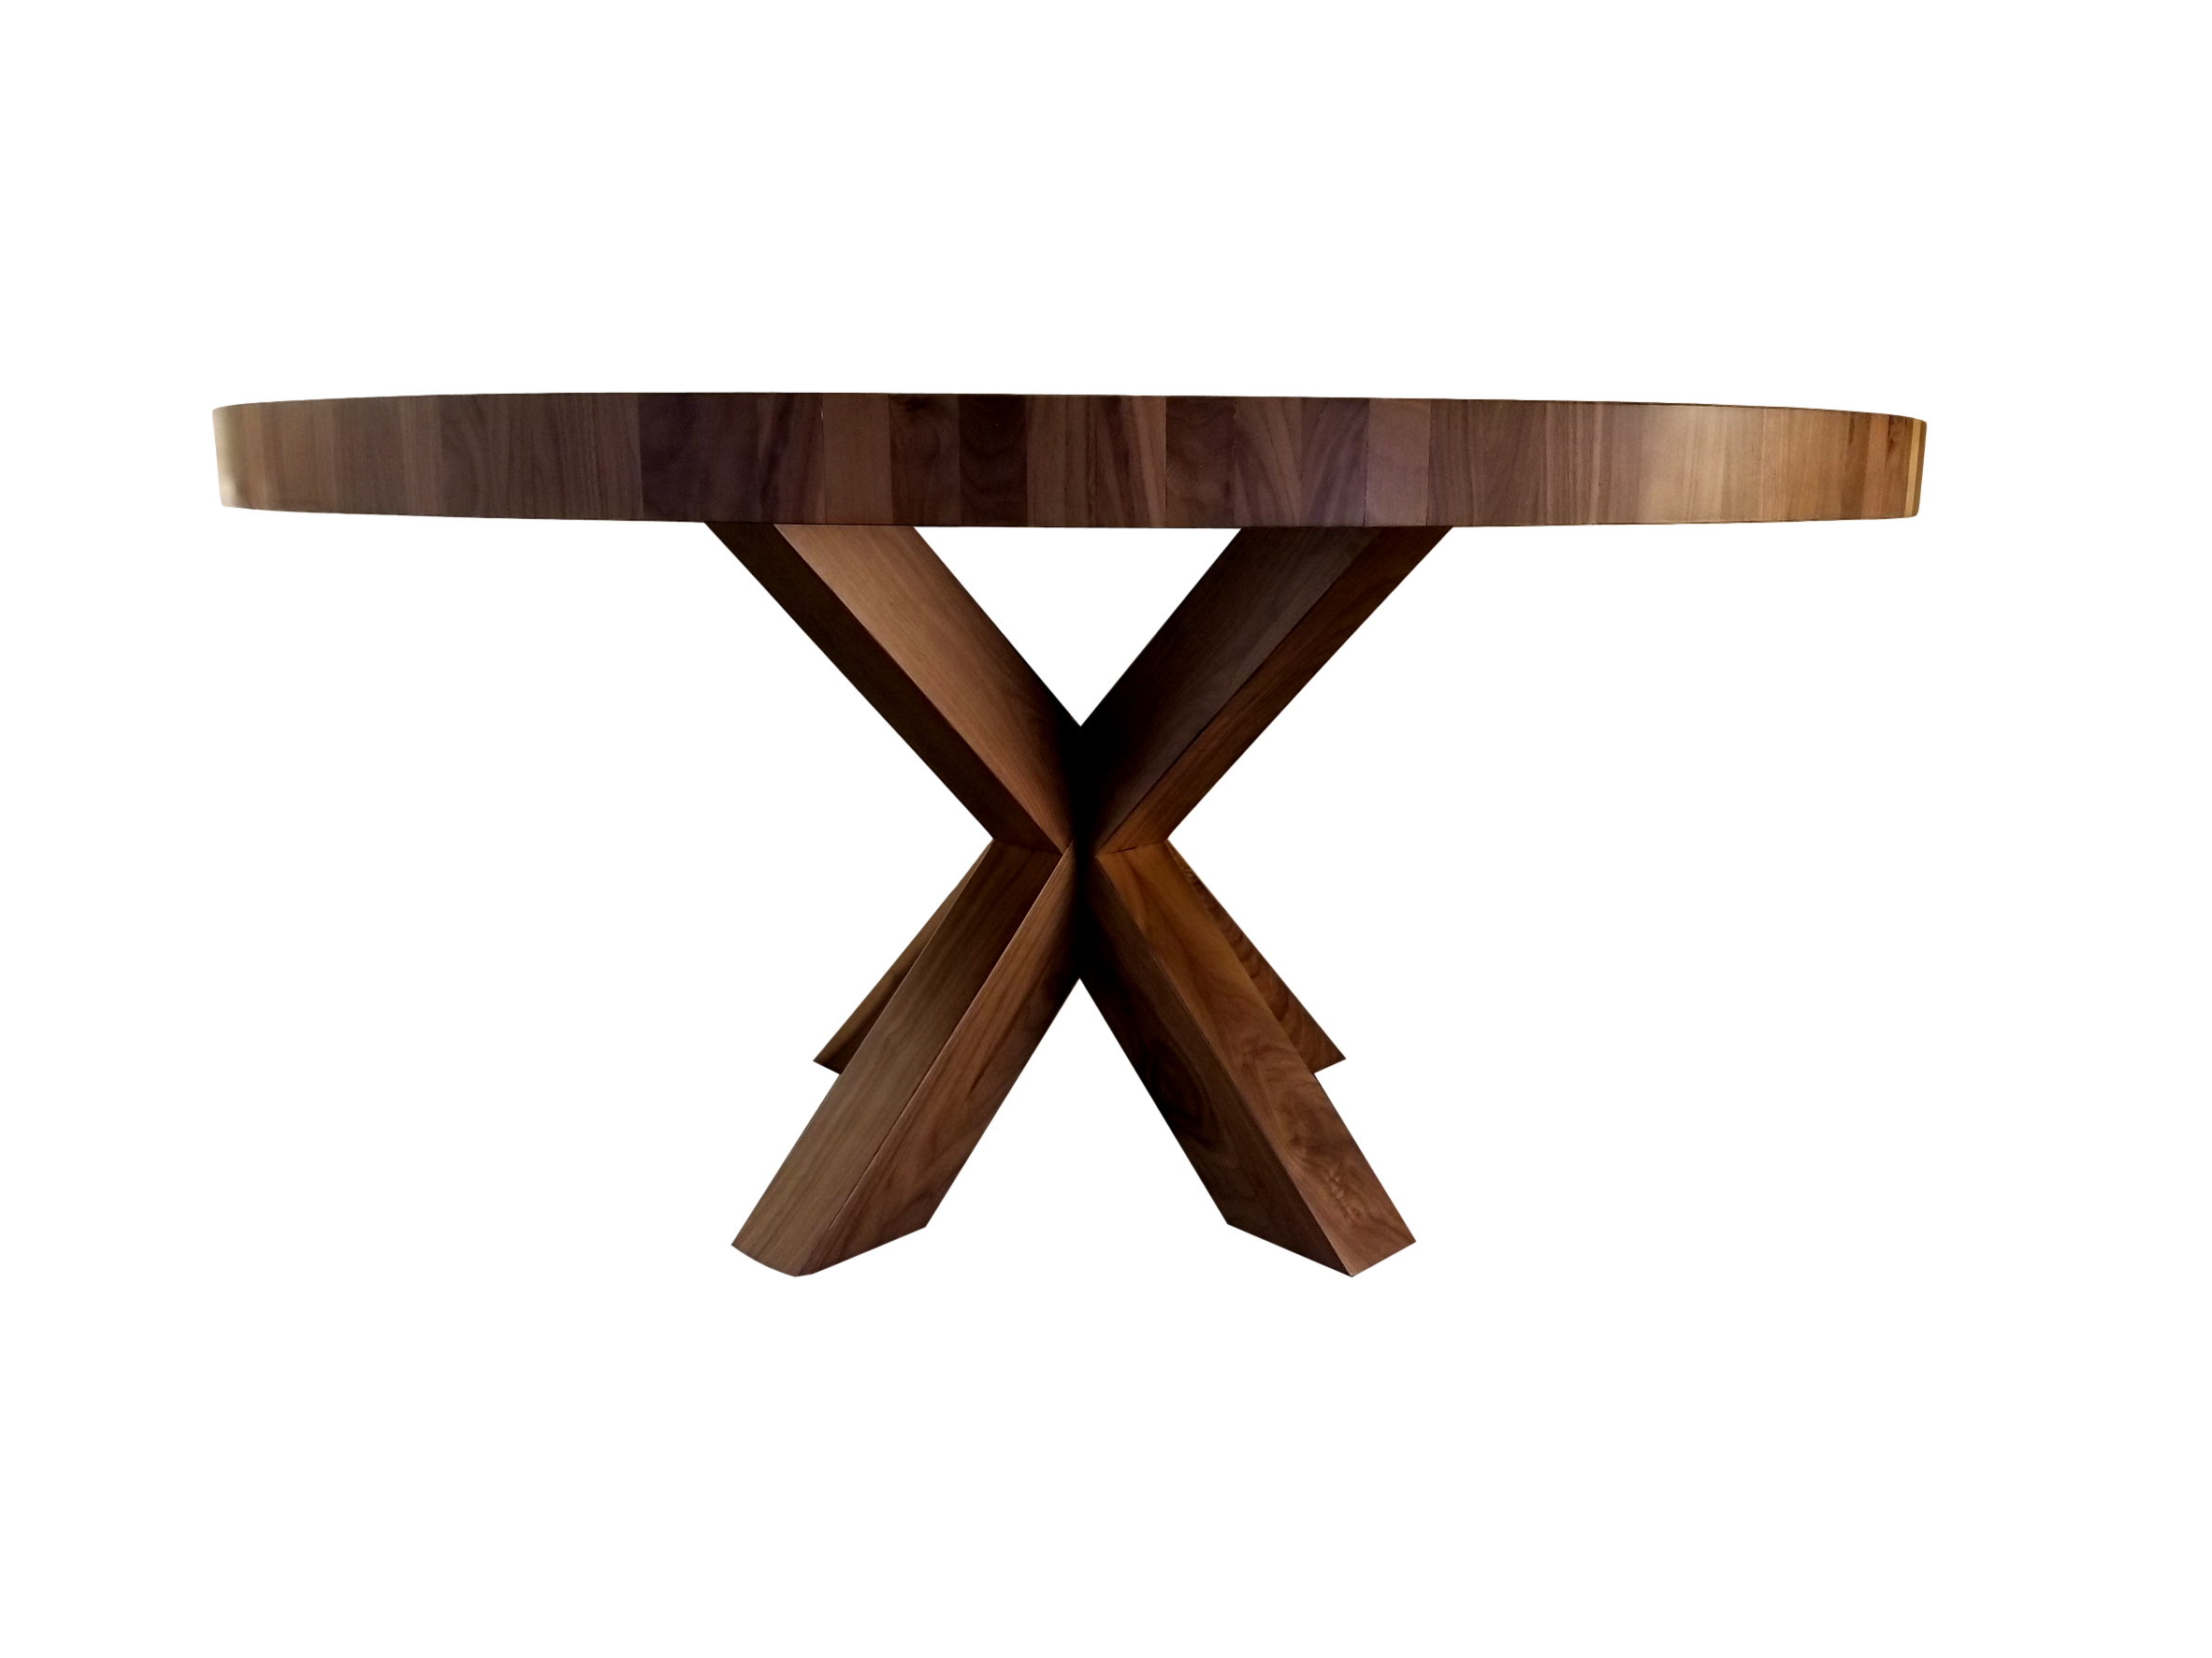 Newest Bartol Reclaimed Dining Tables for X Base Dining Table In 2019